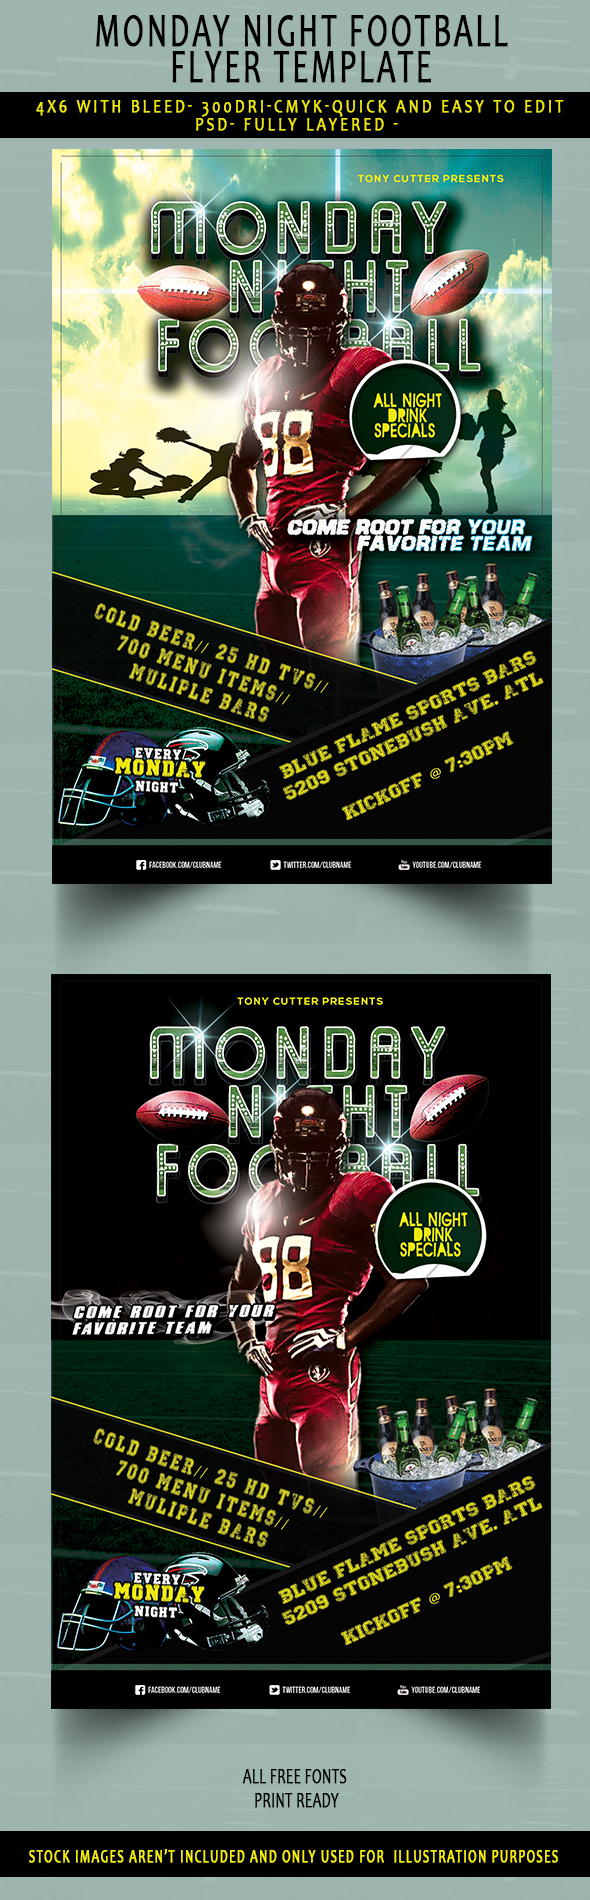 flyer templates for photoshop and word the grid system if one american football flyer template isn t enough here s another one